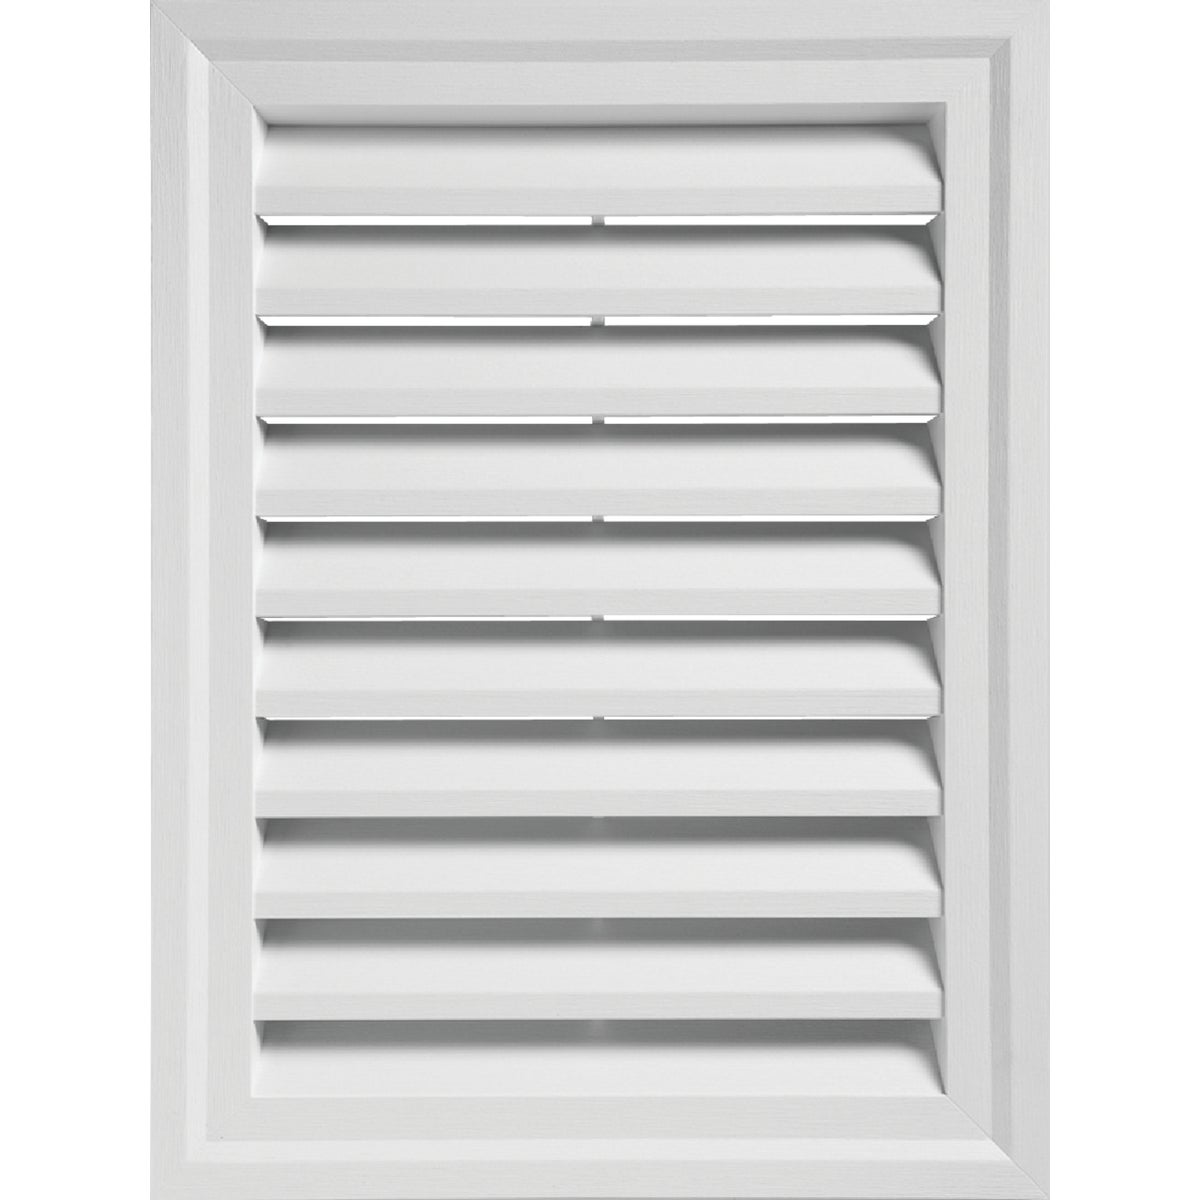 WHITE RECTGLE GABLE VENT - RECTGV1824 PW by Alcoa Home Exteriors